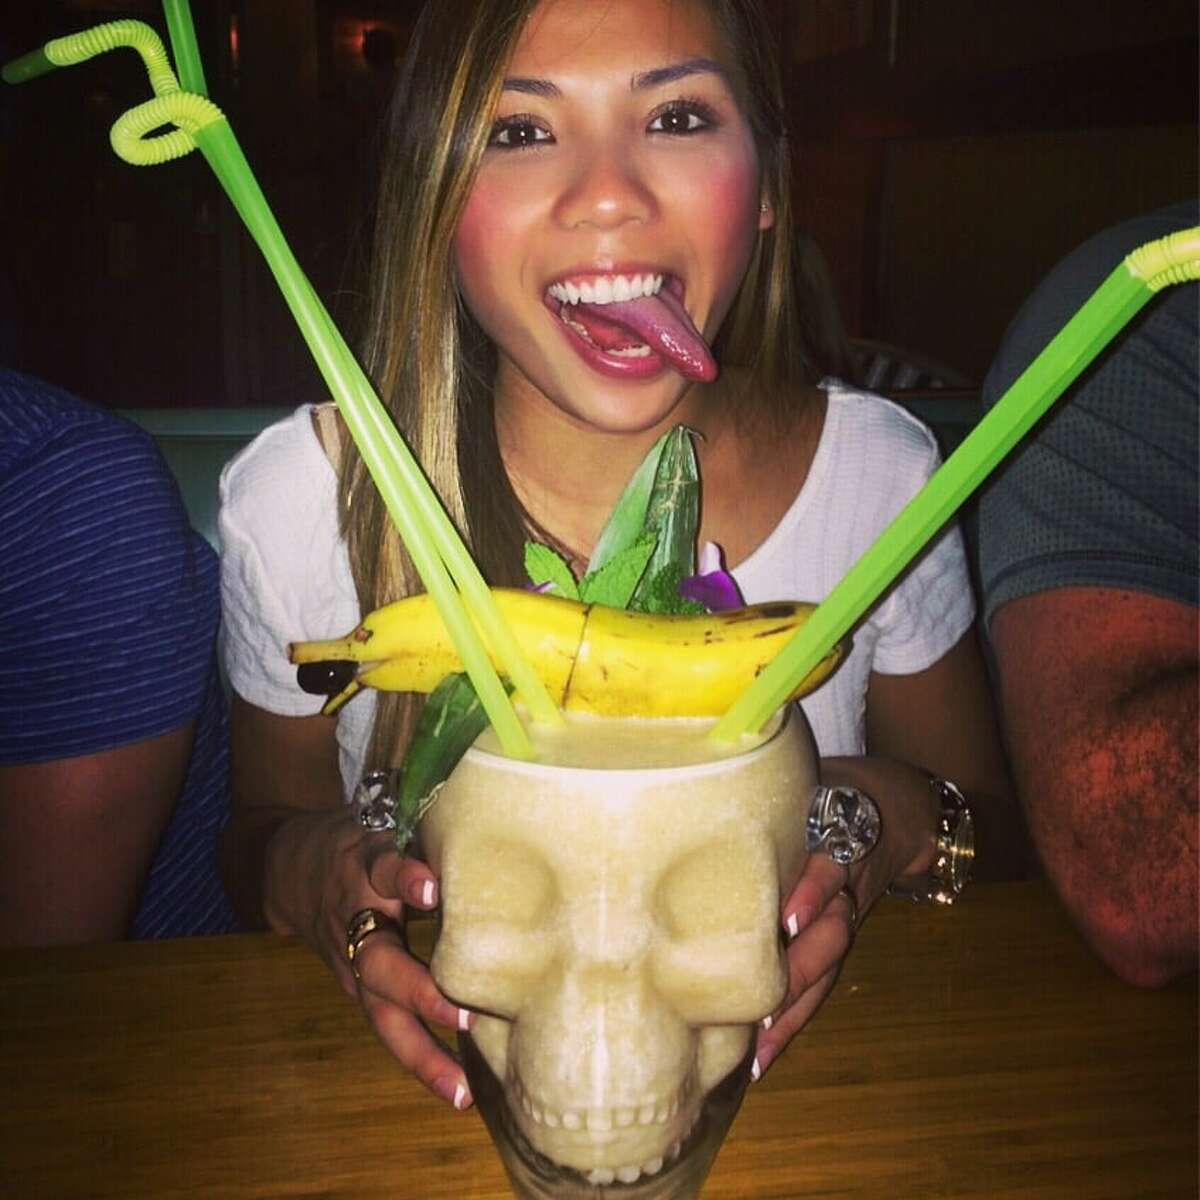 Lei Low6412 N Main Street, Ste. C, HoustonThecrystal skulldrinks at Lei Low are made for parties of four or more and come decked out with unique island garnishes, such as bananas shaped like dolphins.Photo courtesy Michelle H/Yelp